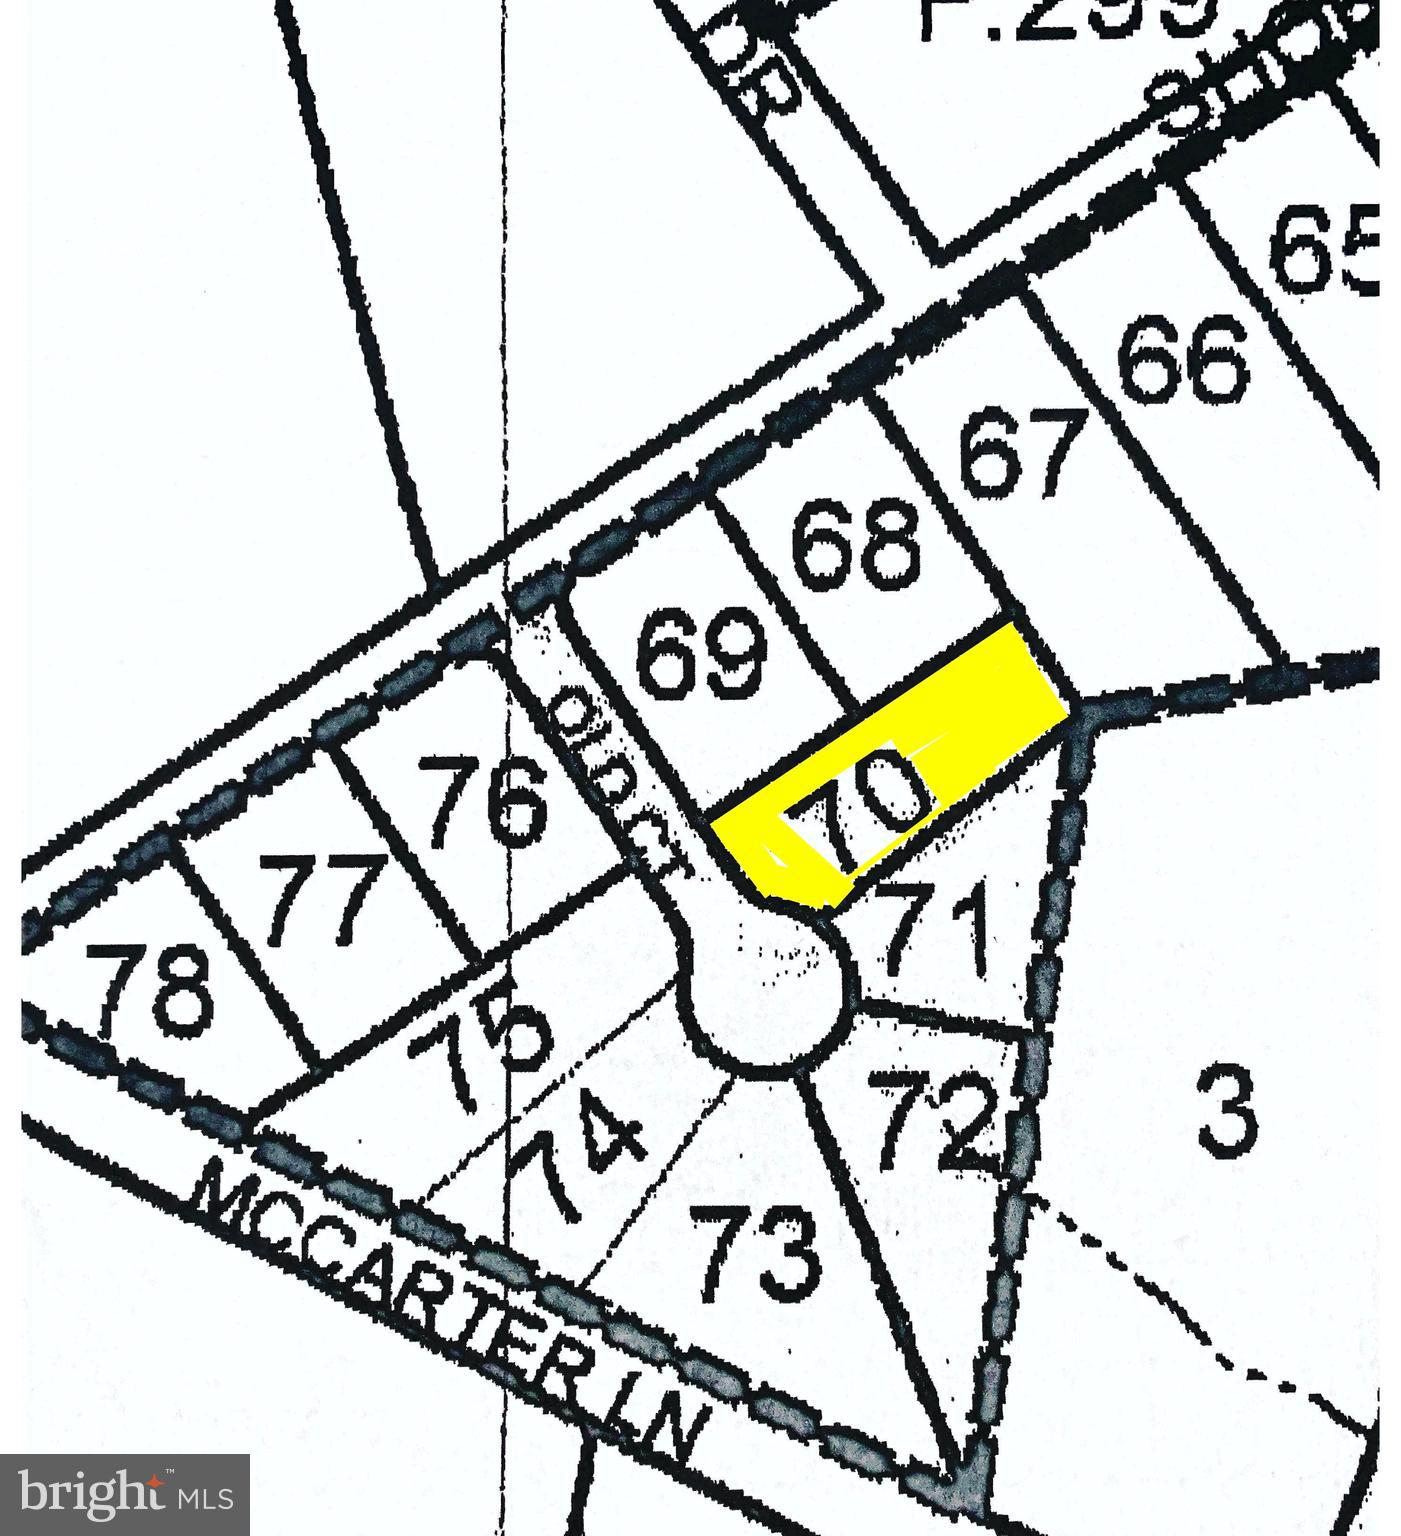 This is lot 70 AKA 1403 Old Ct.      Lots 70, 71 and 72 are each available from this seller.    Public Septic is available but not connected.   Property would require a well for water.   Located in Critical Area, the county planner of the day verbally stated they will allow tree removal on 30% of the lot.   Buyer will need to verify.   No sign on property.    Old Ct is a cul-de-sac paper road located between and behind 4105 Shoreham Beach Rd and 4101 Shoreham Beach Rd. Property may include wetlands.  Buyer will need to verify.